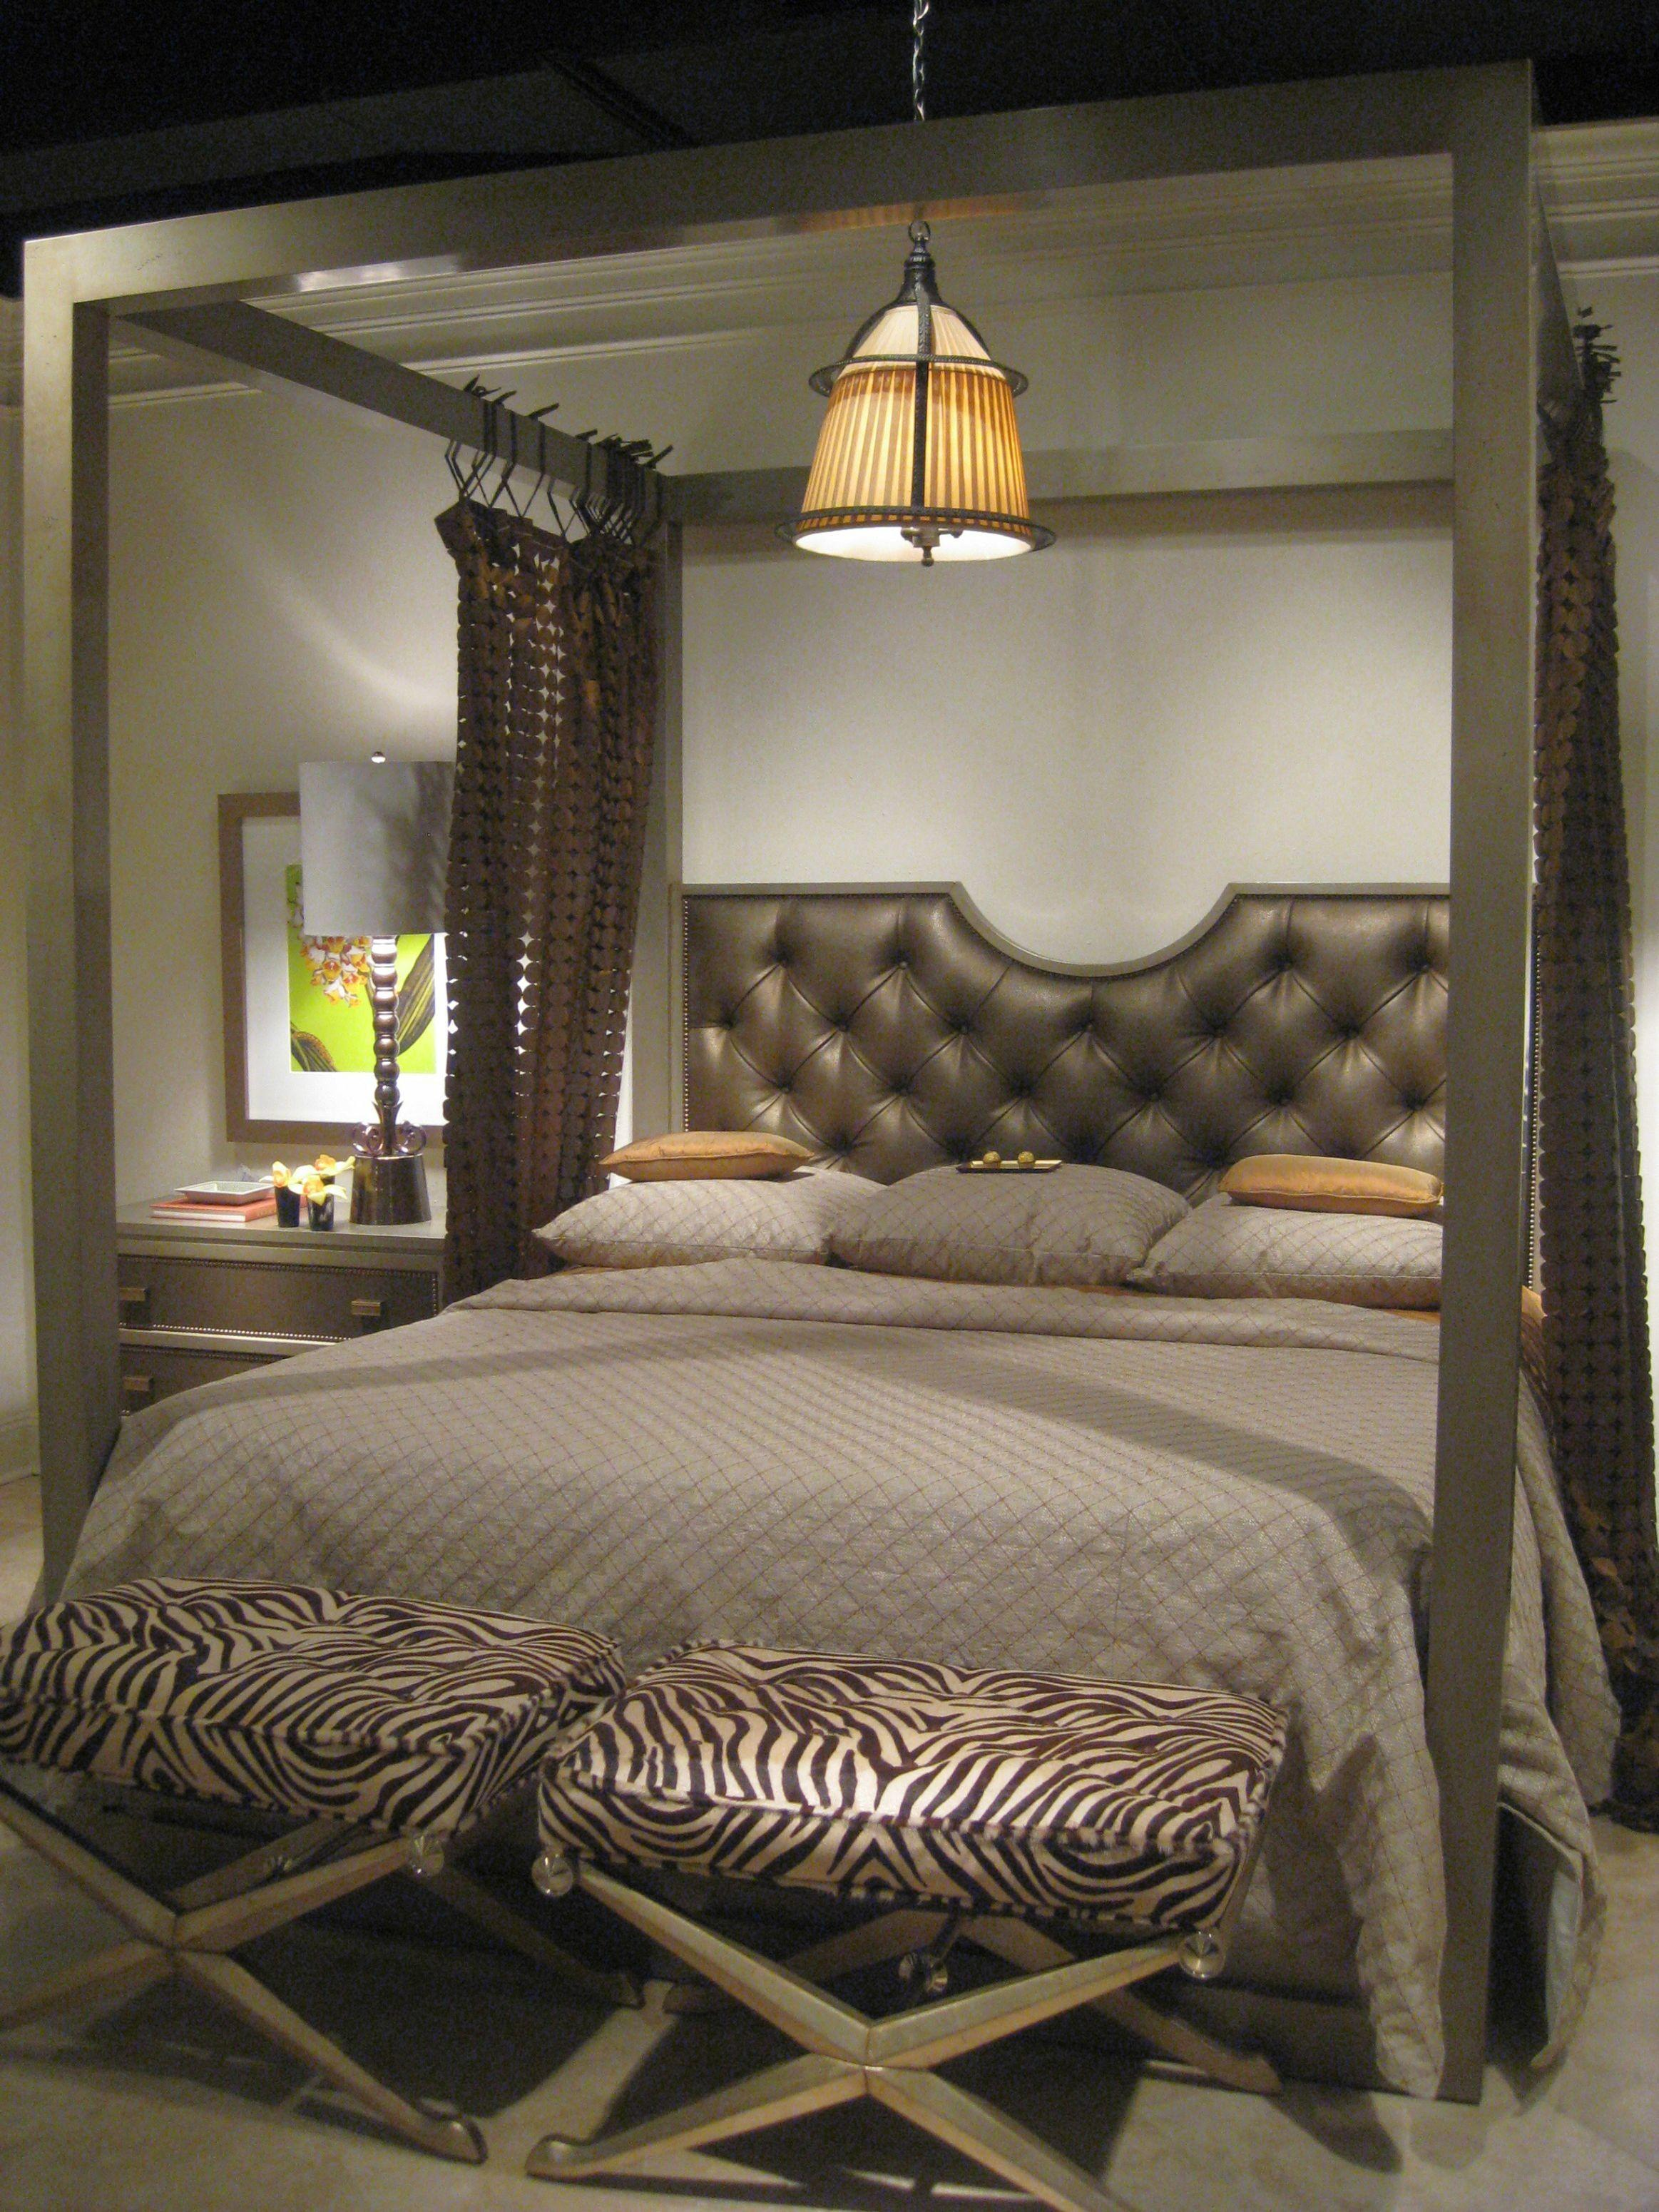 Bedroom Zenlike Master Featuring Darkfinished